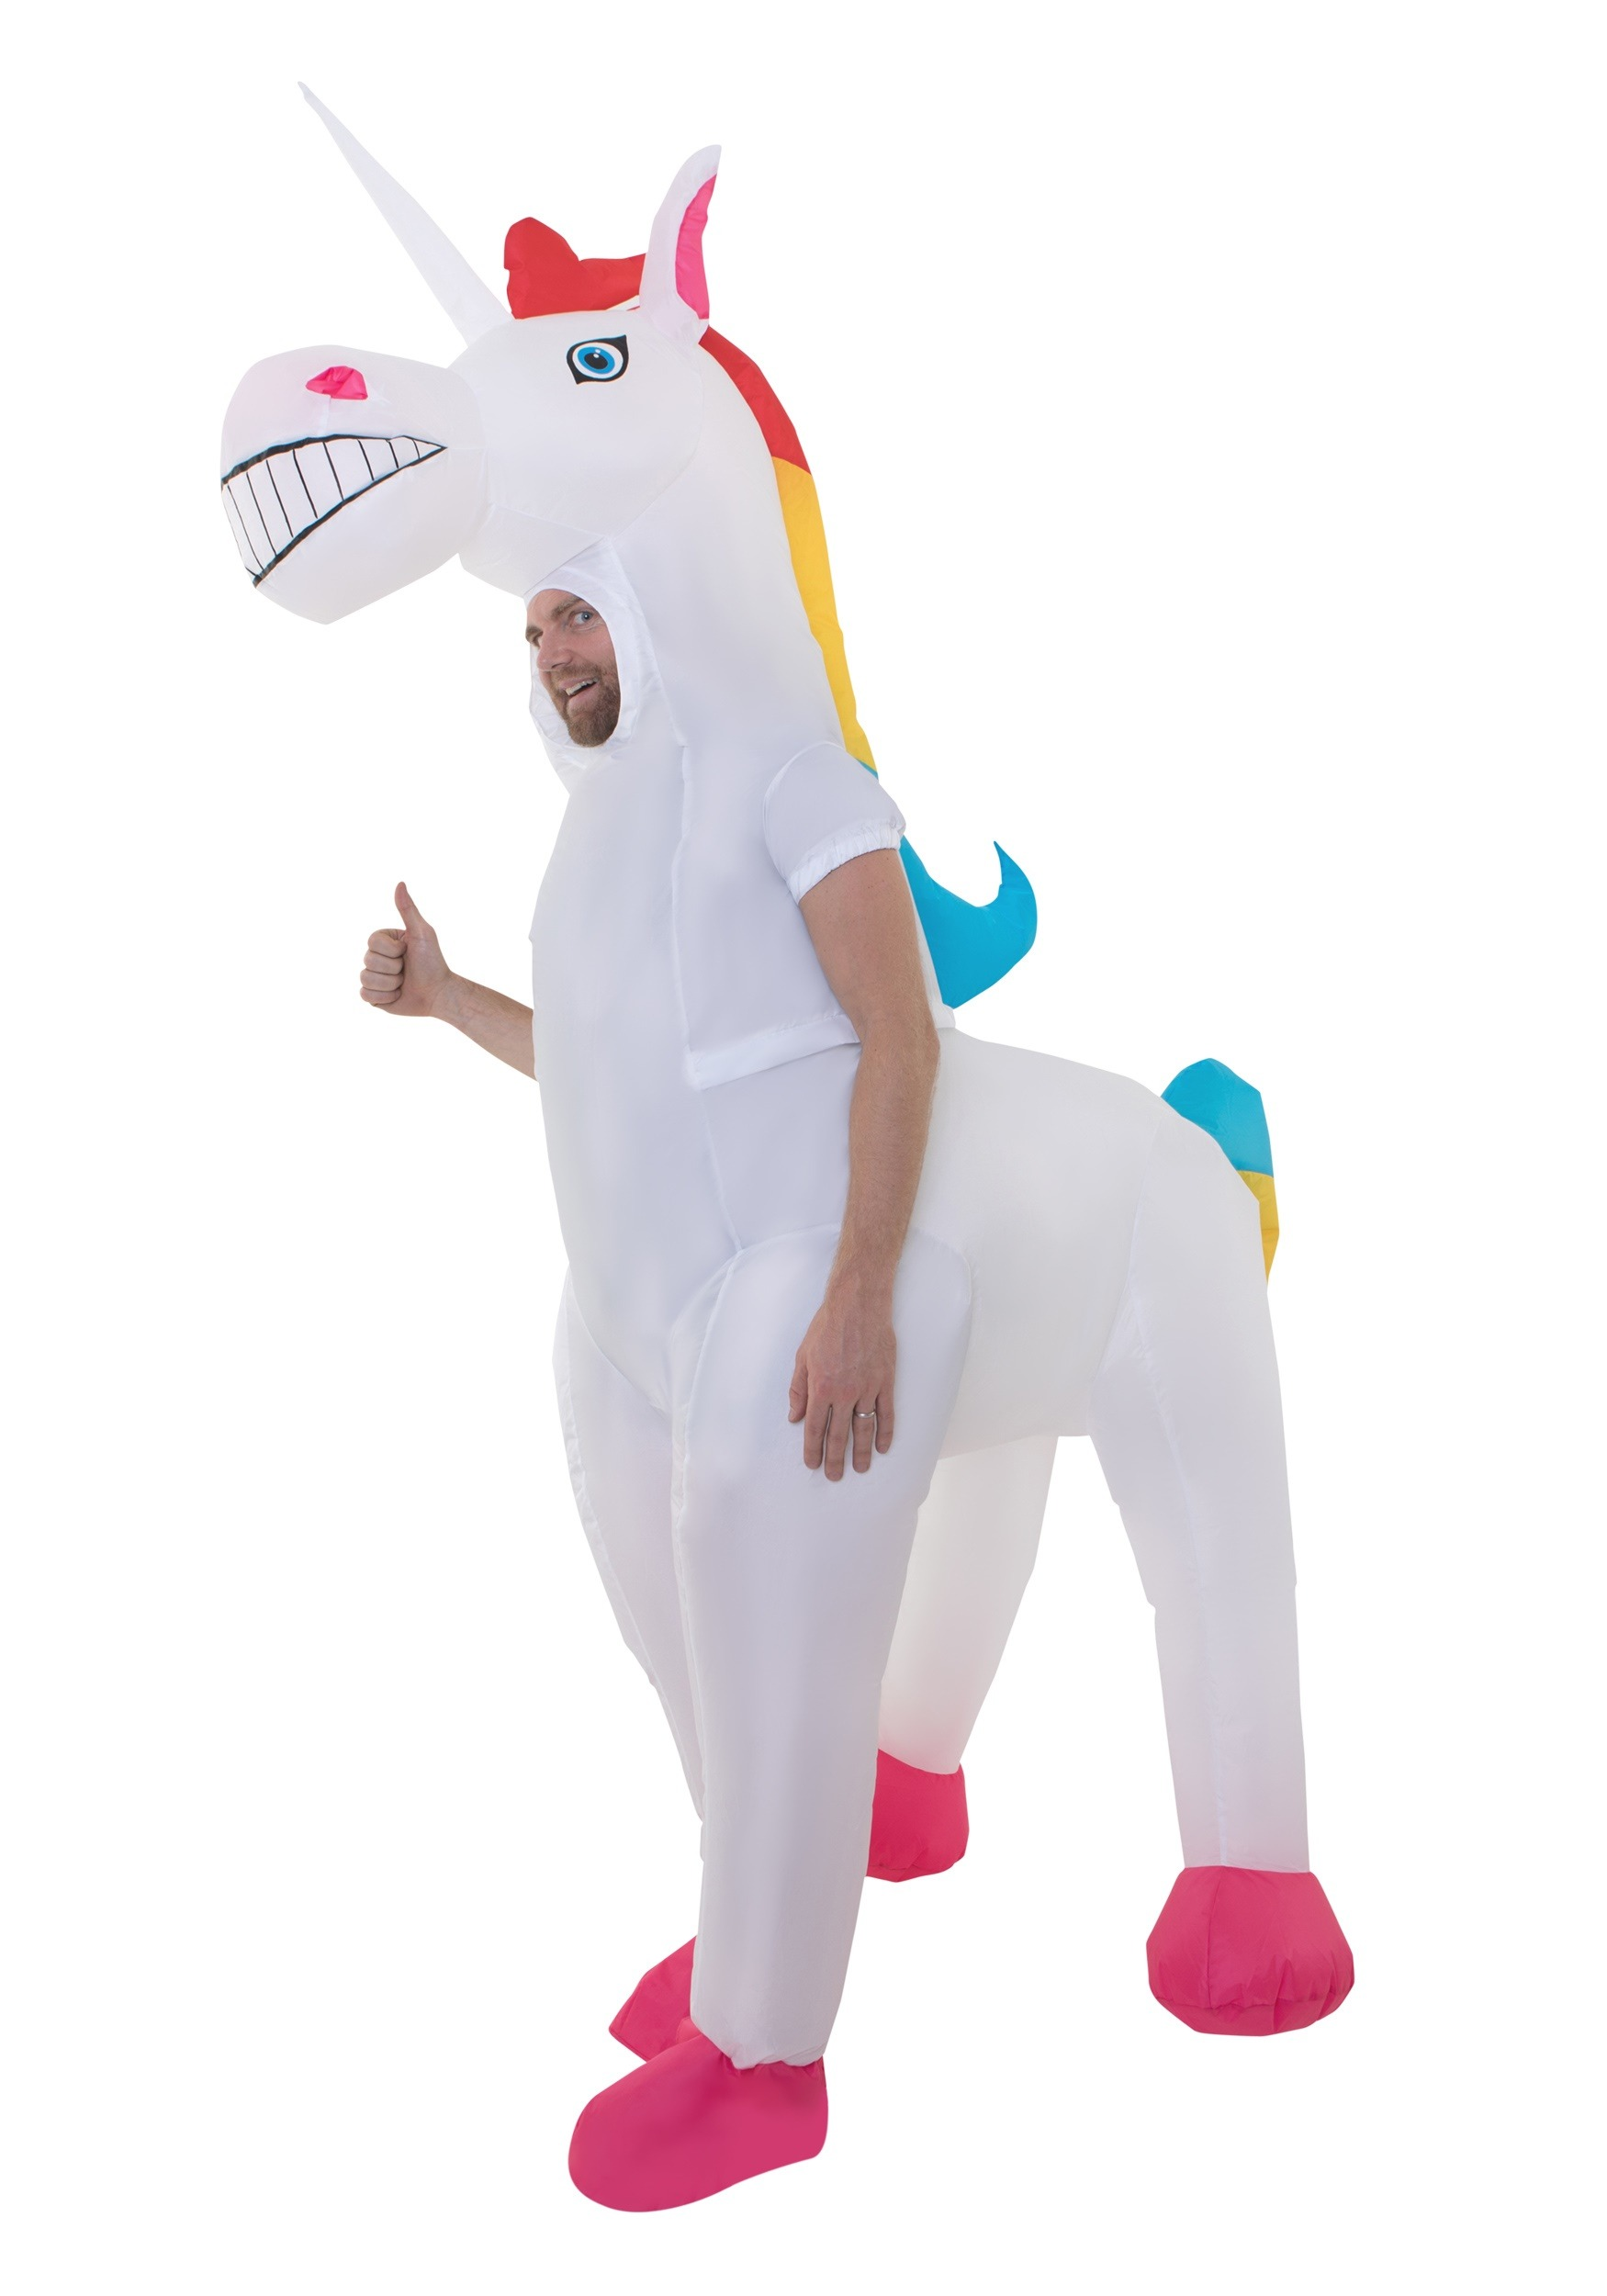 Adult Giant Inflatable Unicorn Costume  sc 1 st  Halloween Costumes & Giant Inflatable Unicorn Costume for Adults